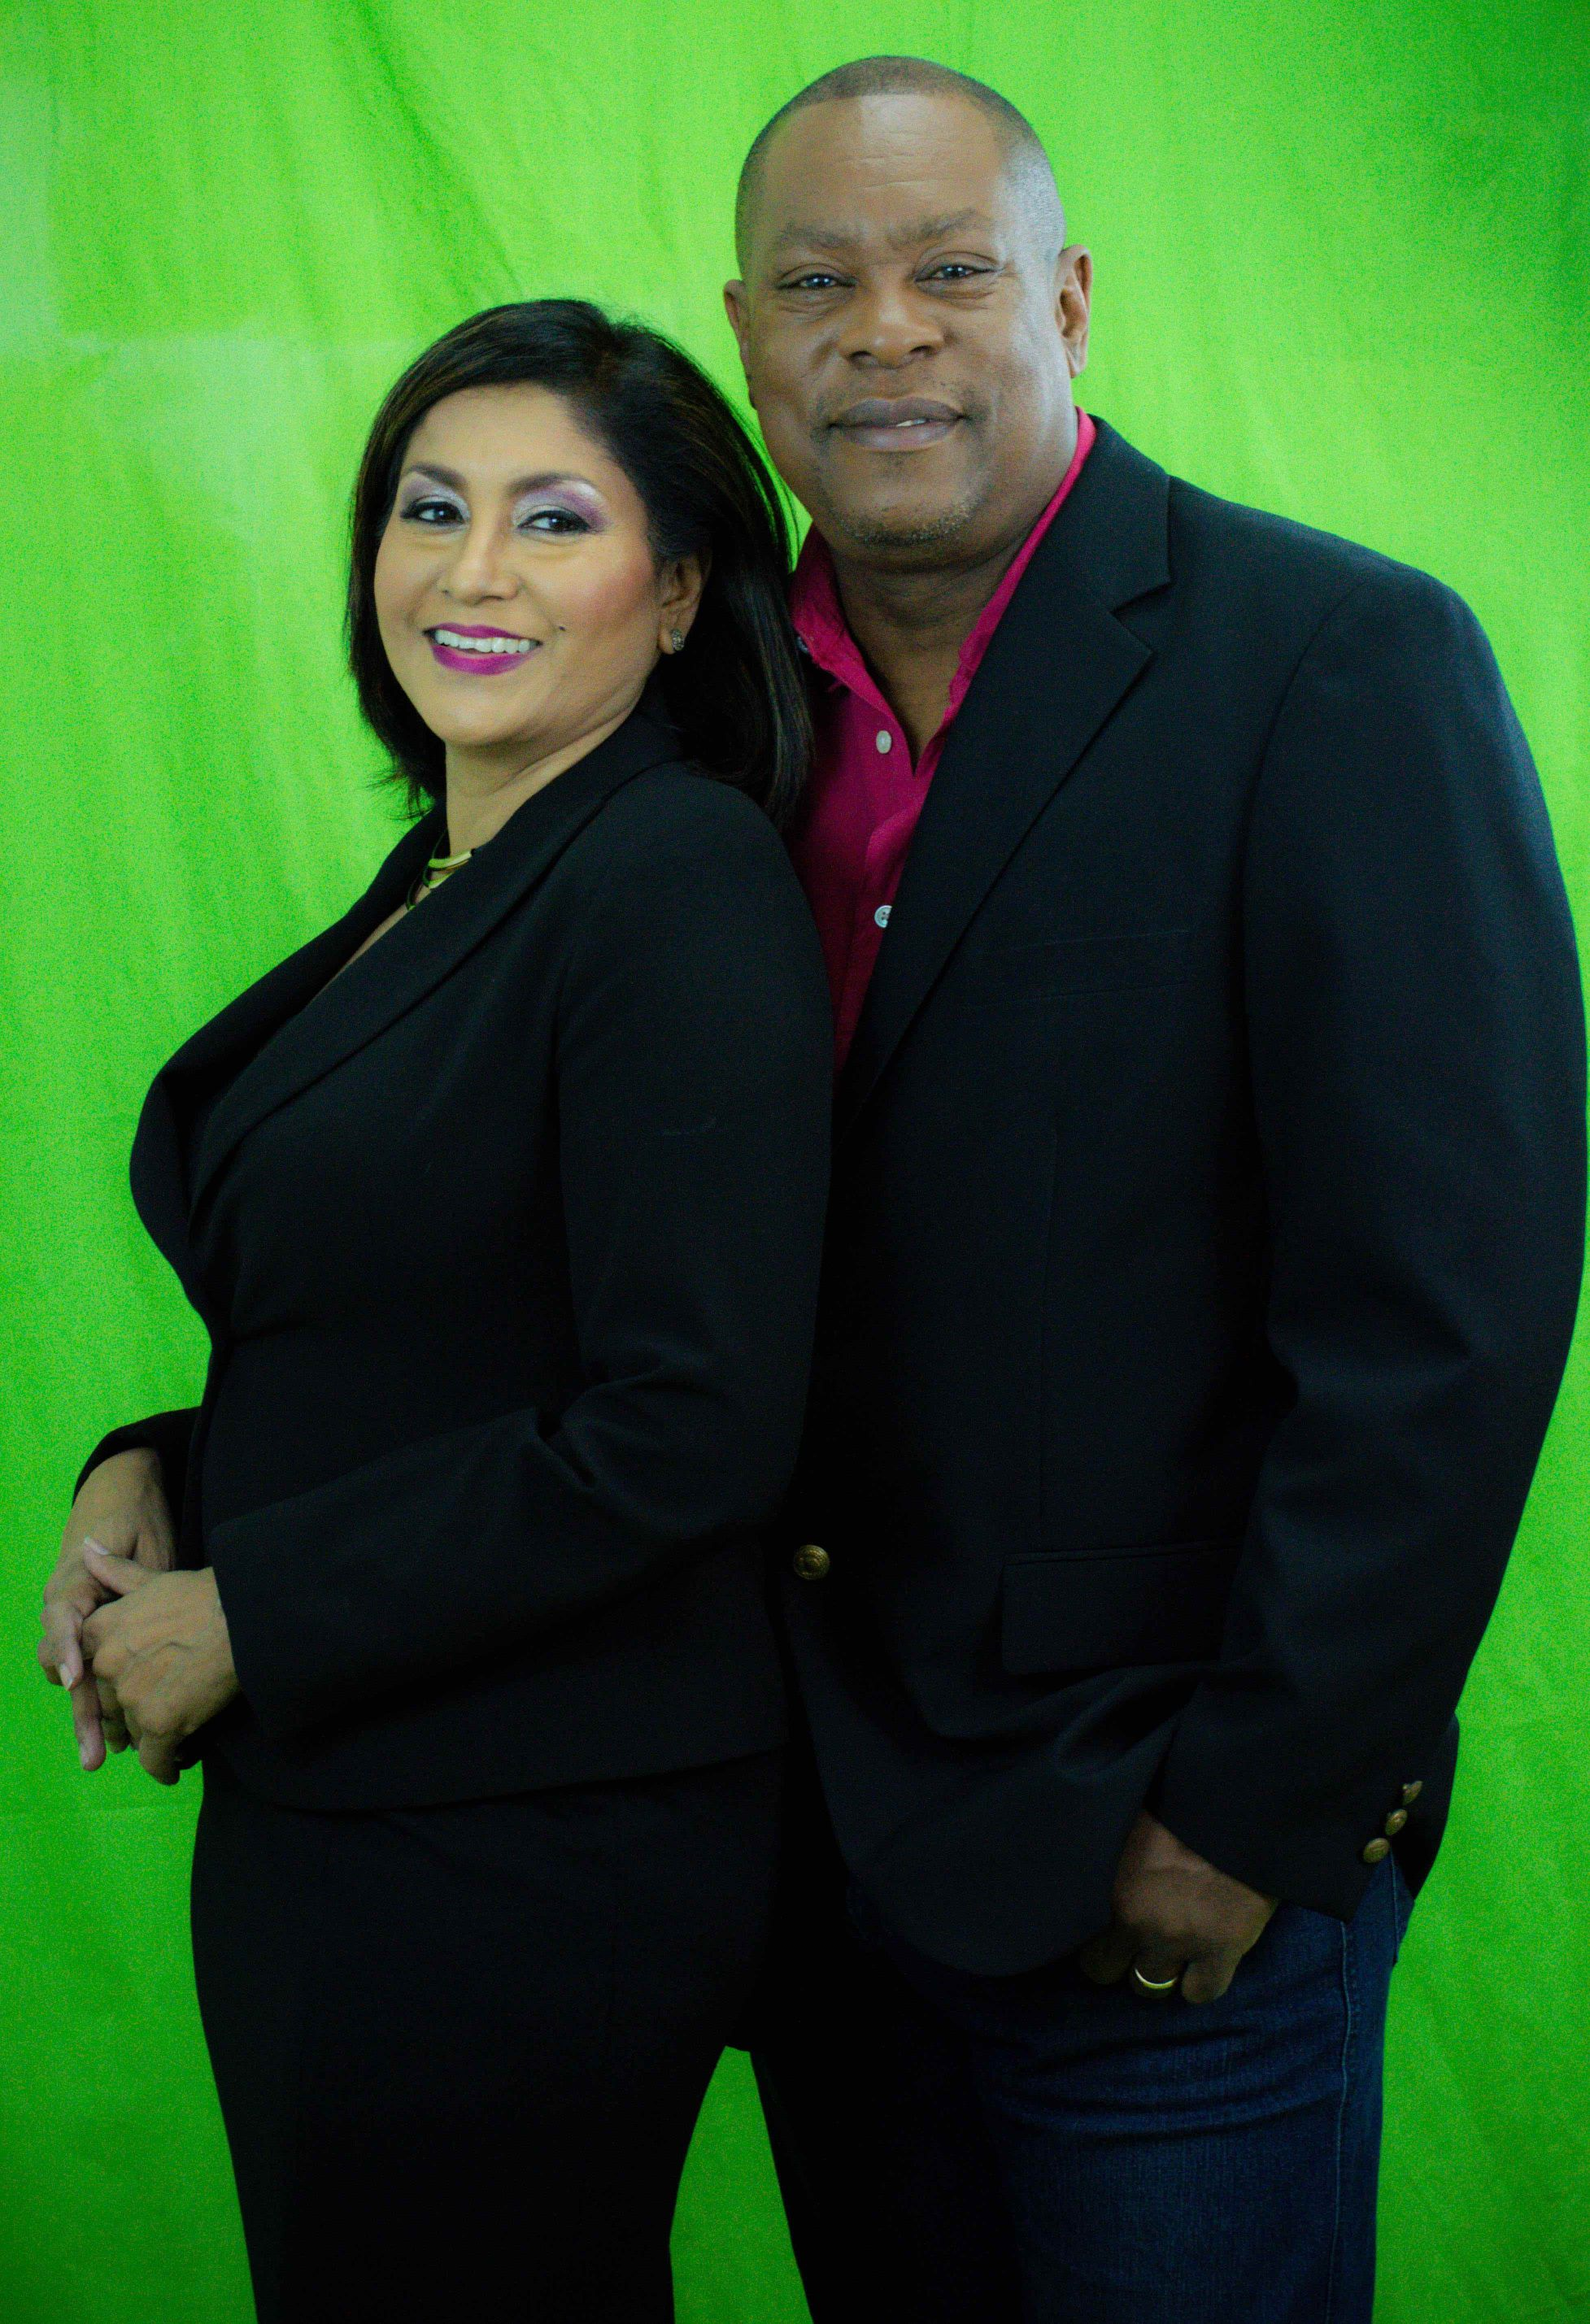 Kenny & Dianne Phillips, Management Team at WACK 90.1fm